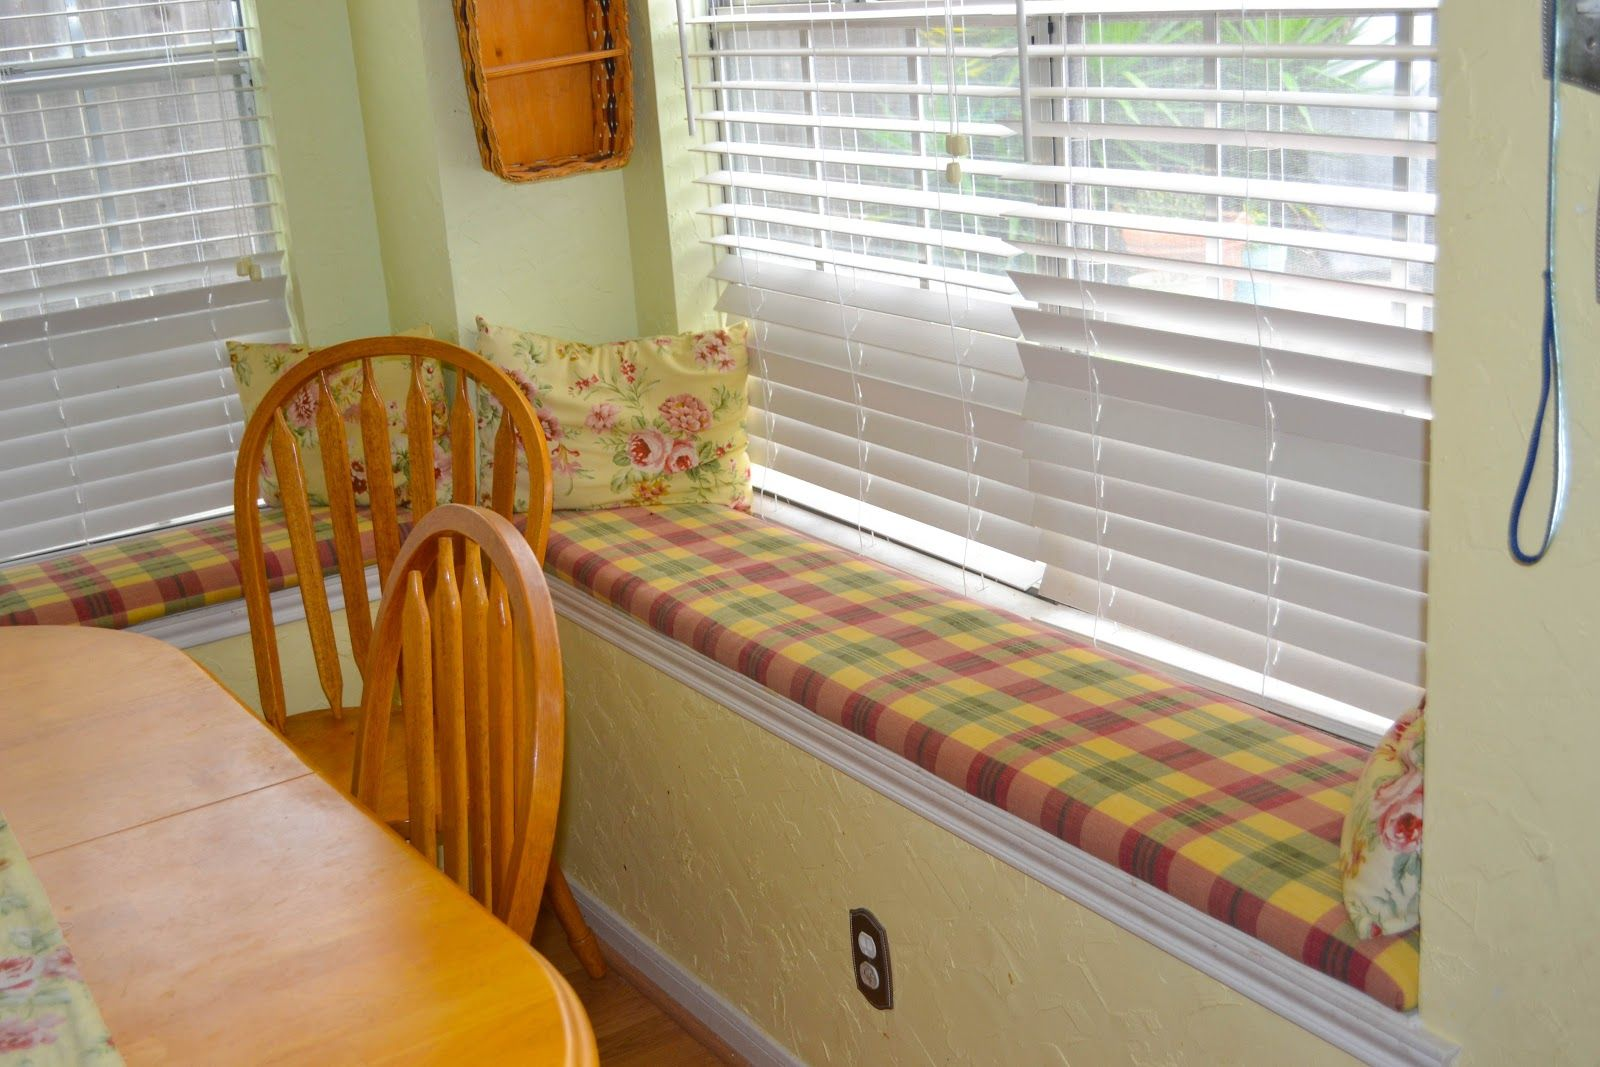 Mommiedom: New Bench Covers for the Windows